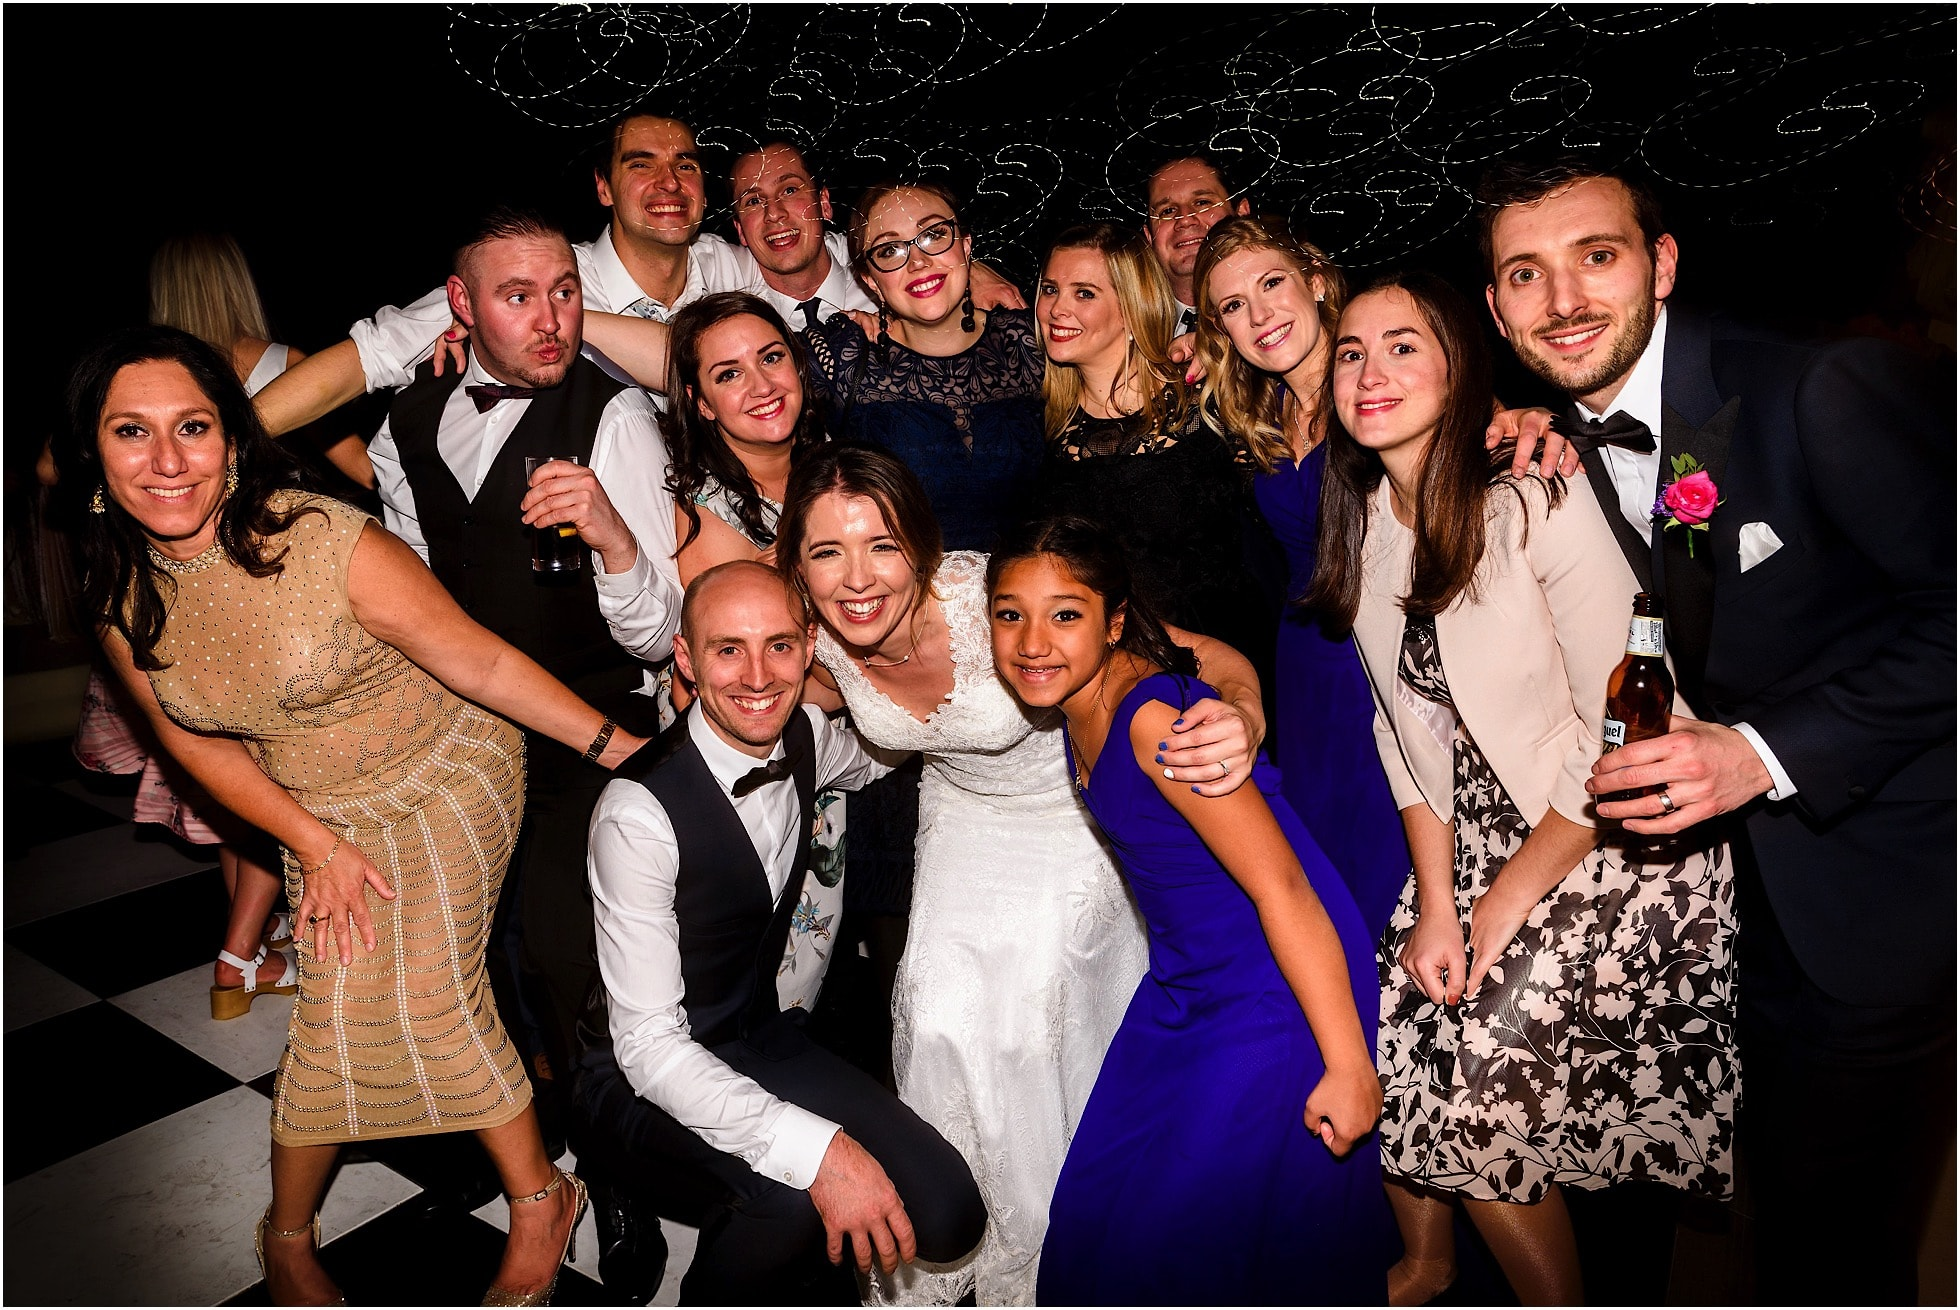 Groups shot on dancefloor at Priory Cottages